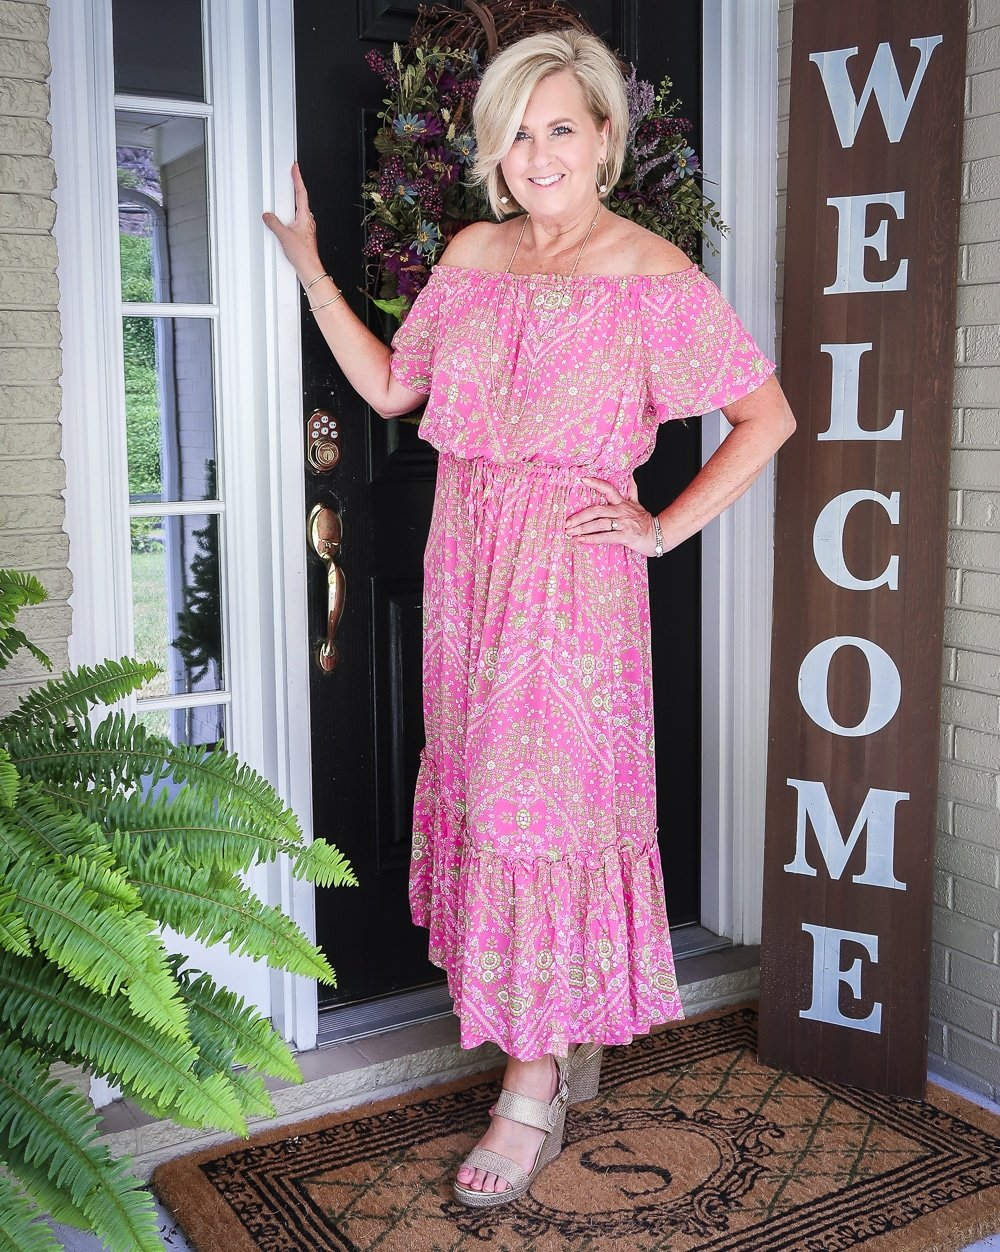 Fashion Blogger 50 Is Not Old is wearing an off the shoulder pink dress with delicate gold jewelry and gold wedge espadrilles